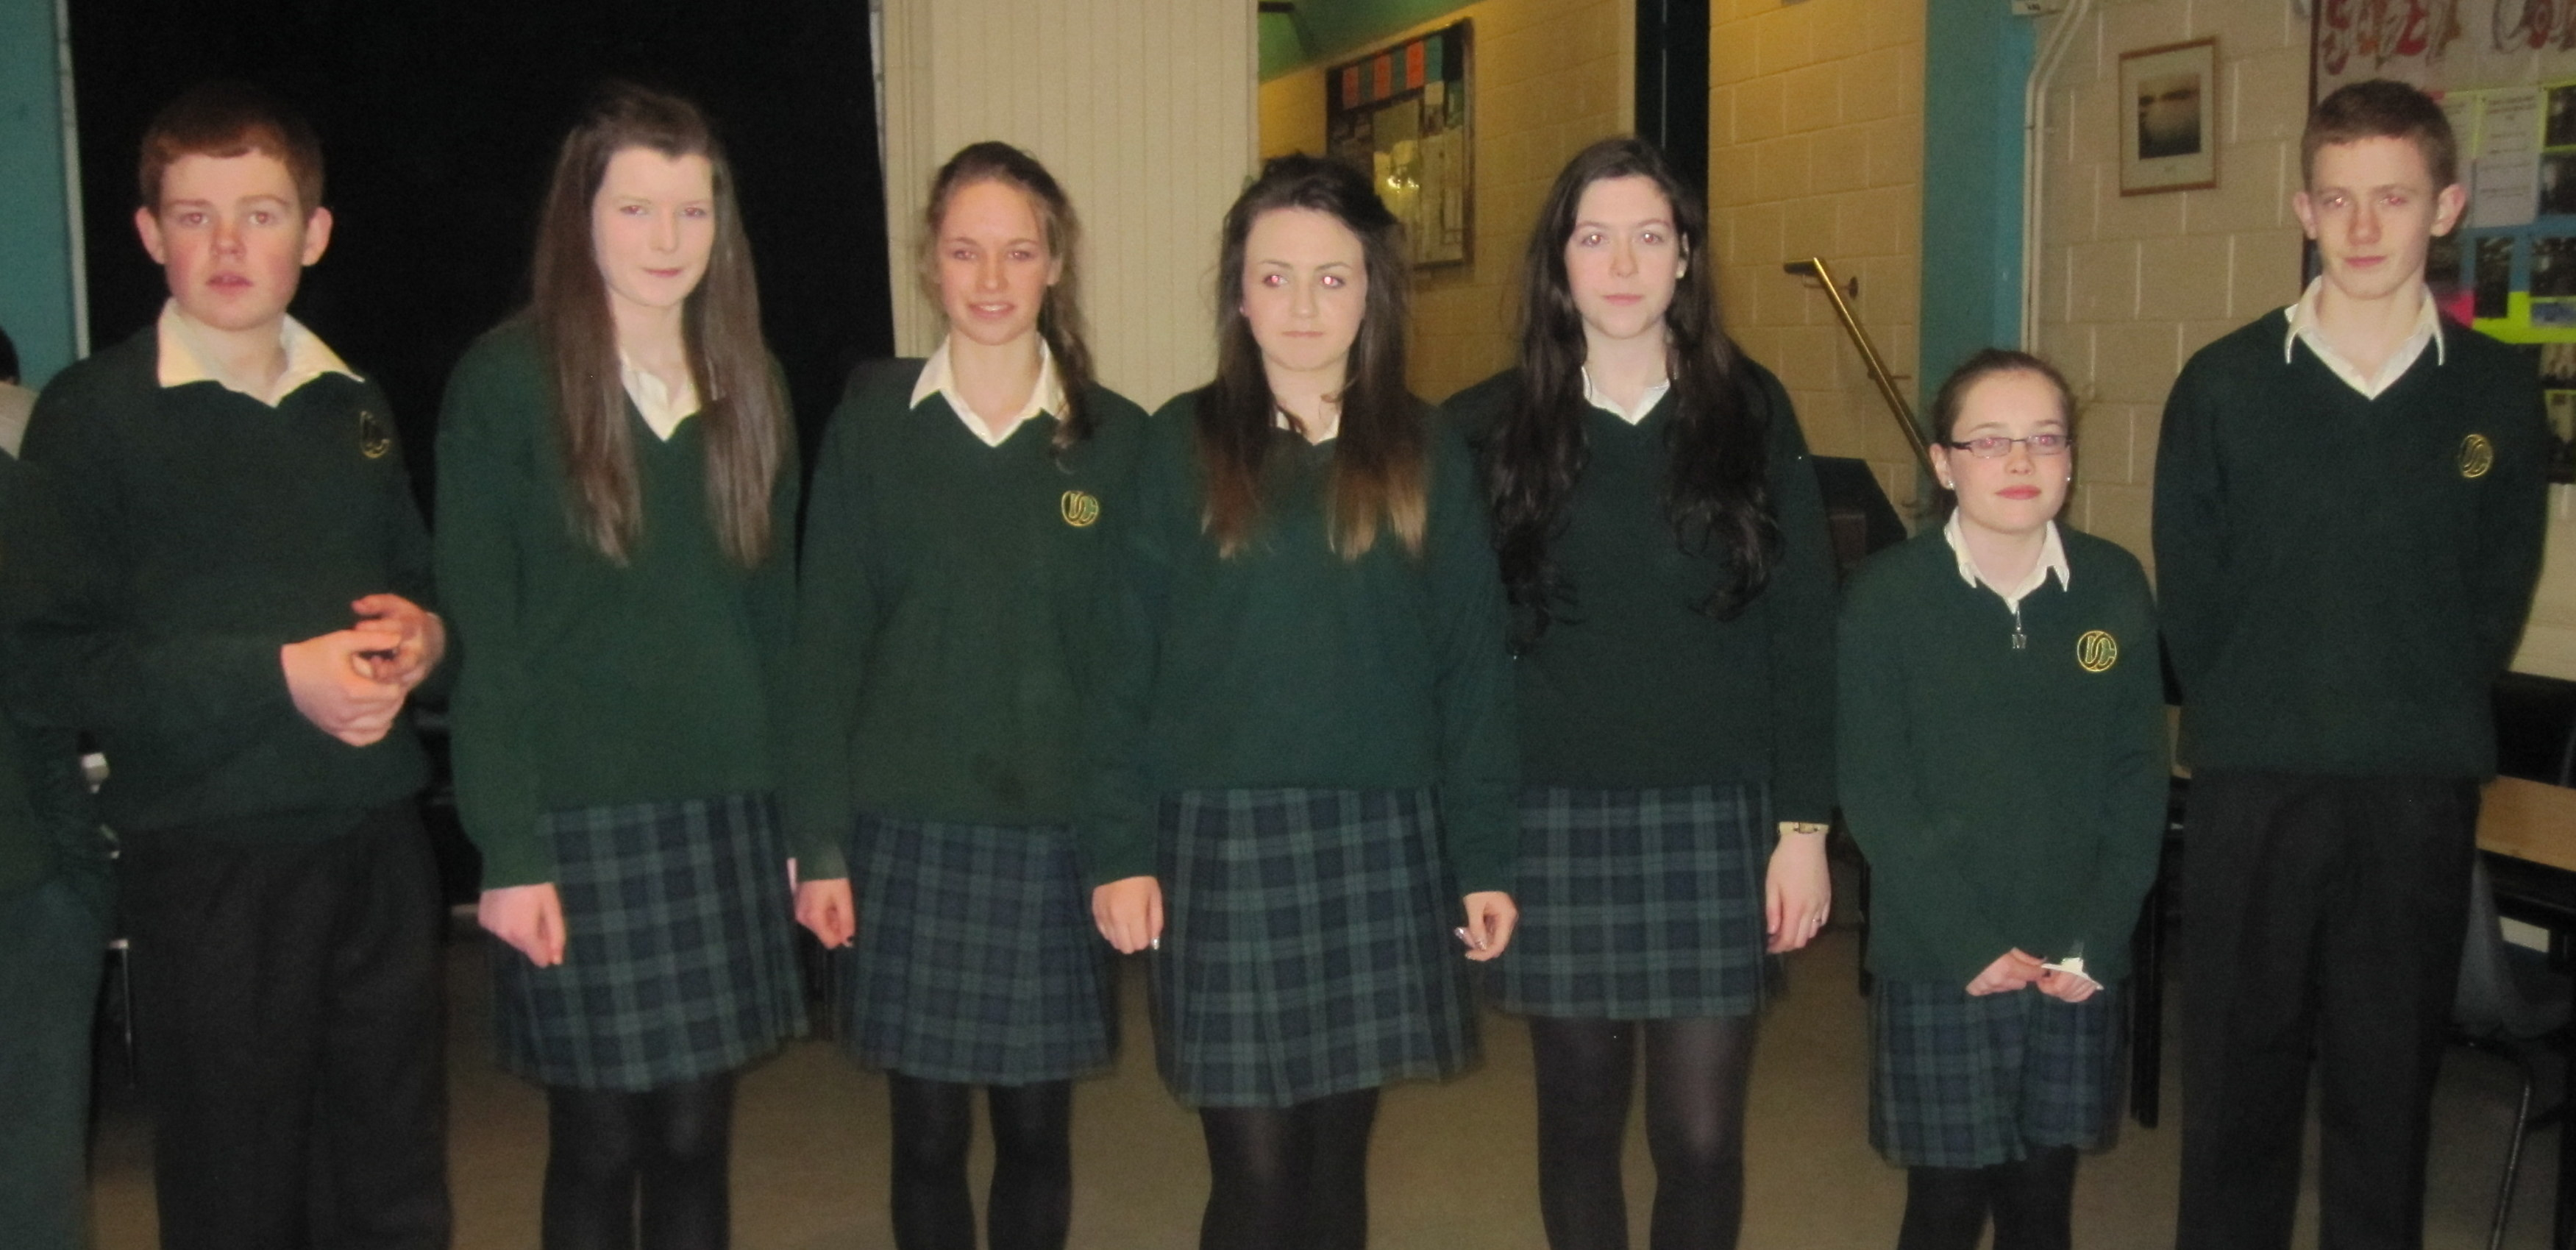 Davitt College Student Council Members model the new uniform